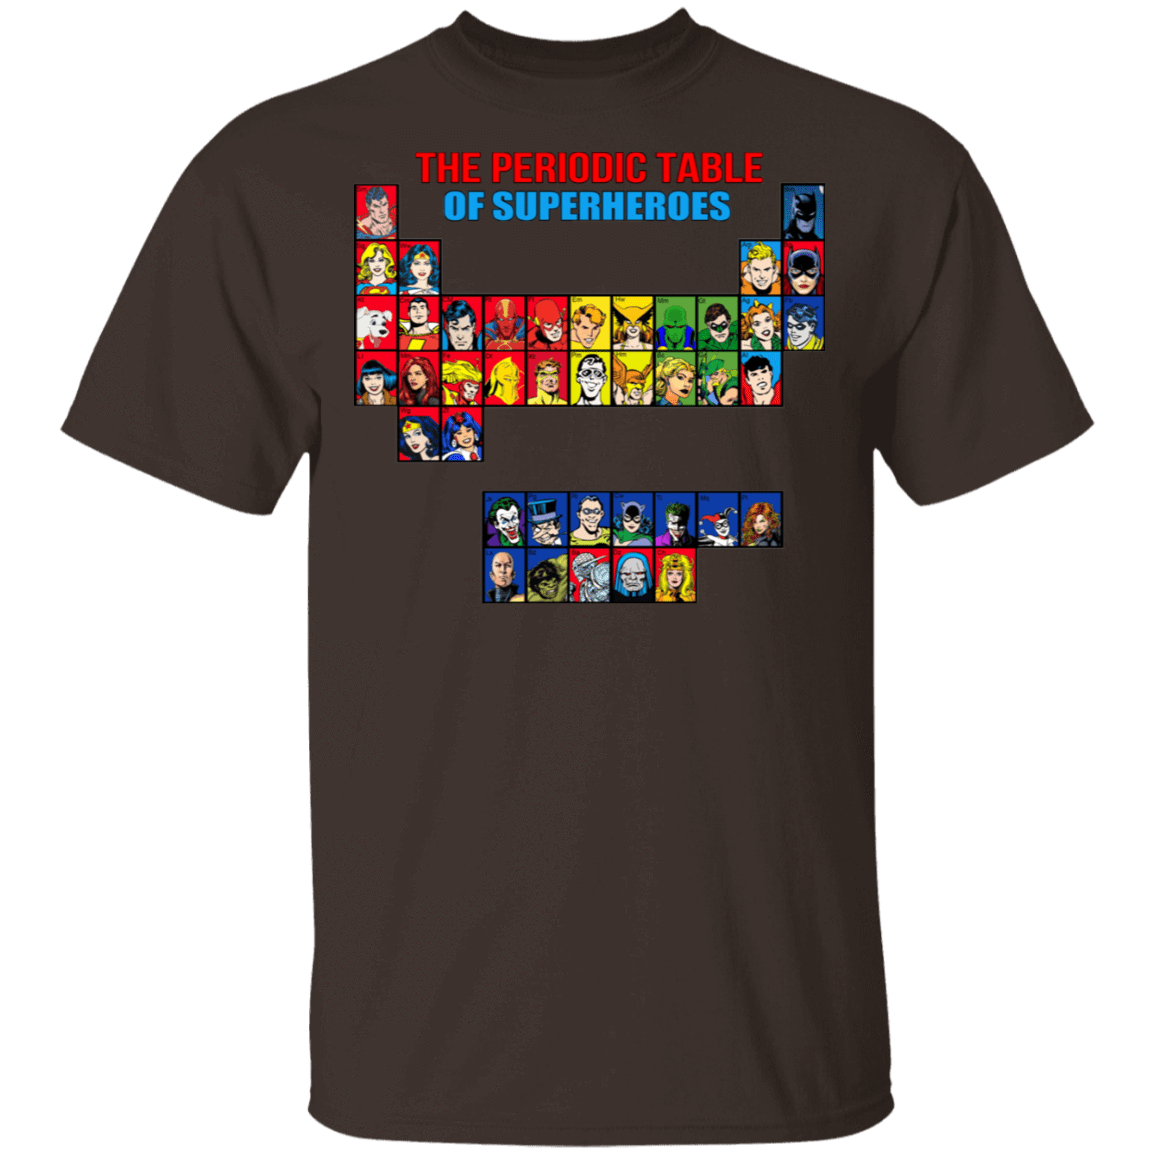 The Periodic Table Of Superheroes T-Shirts, Hoodies, Tank 22-2283-79998332-12087 - Tee Ript